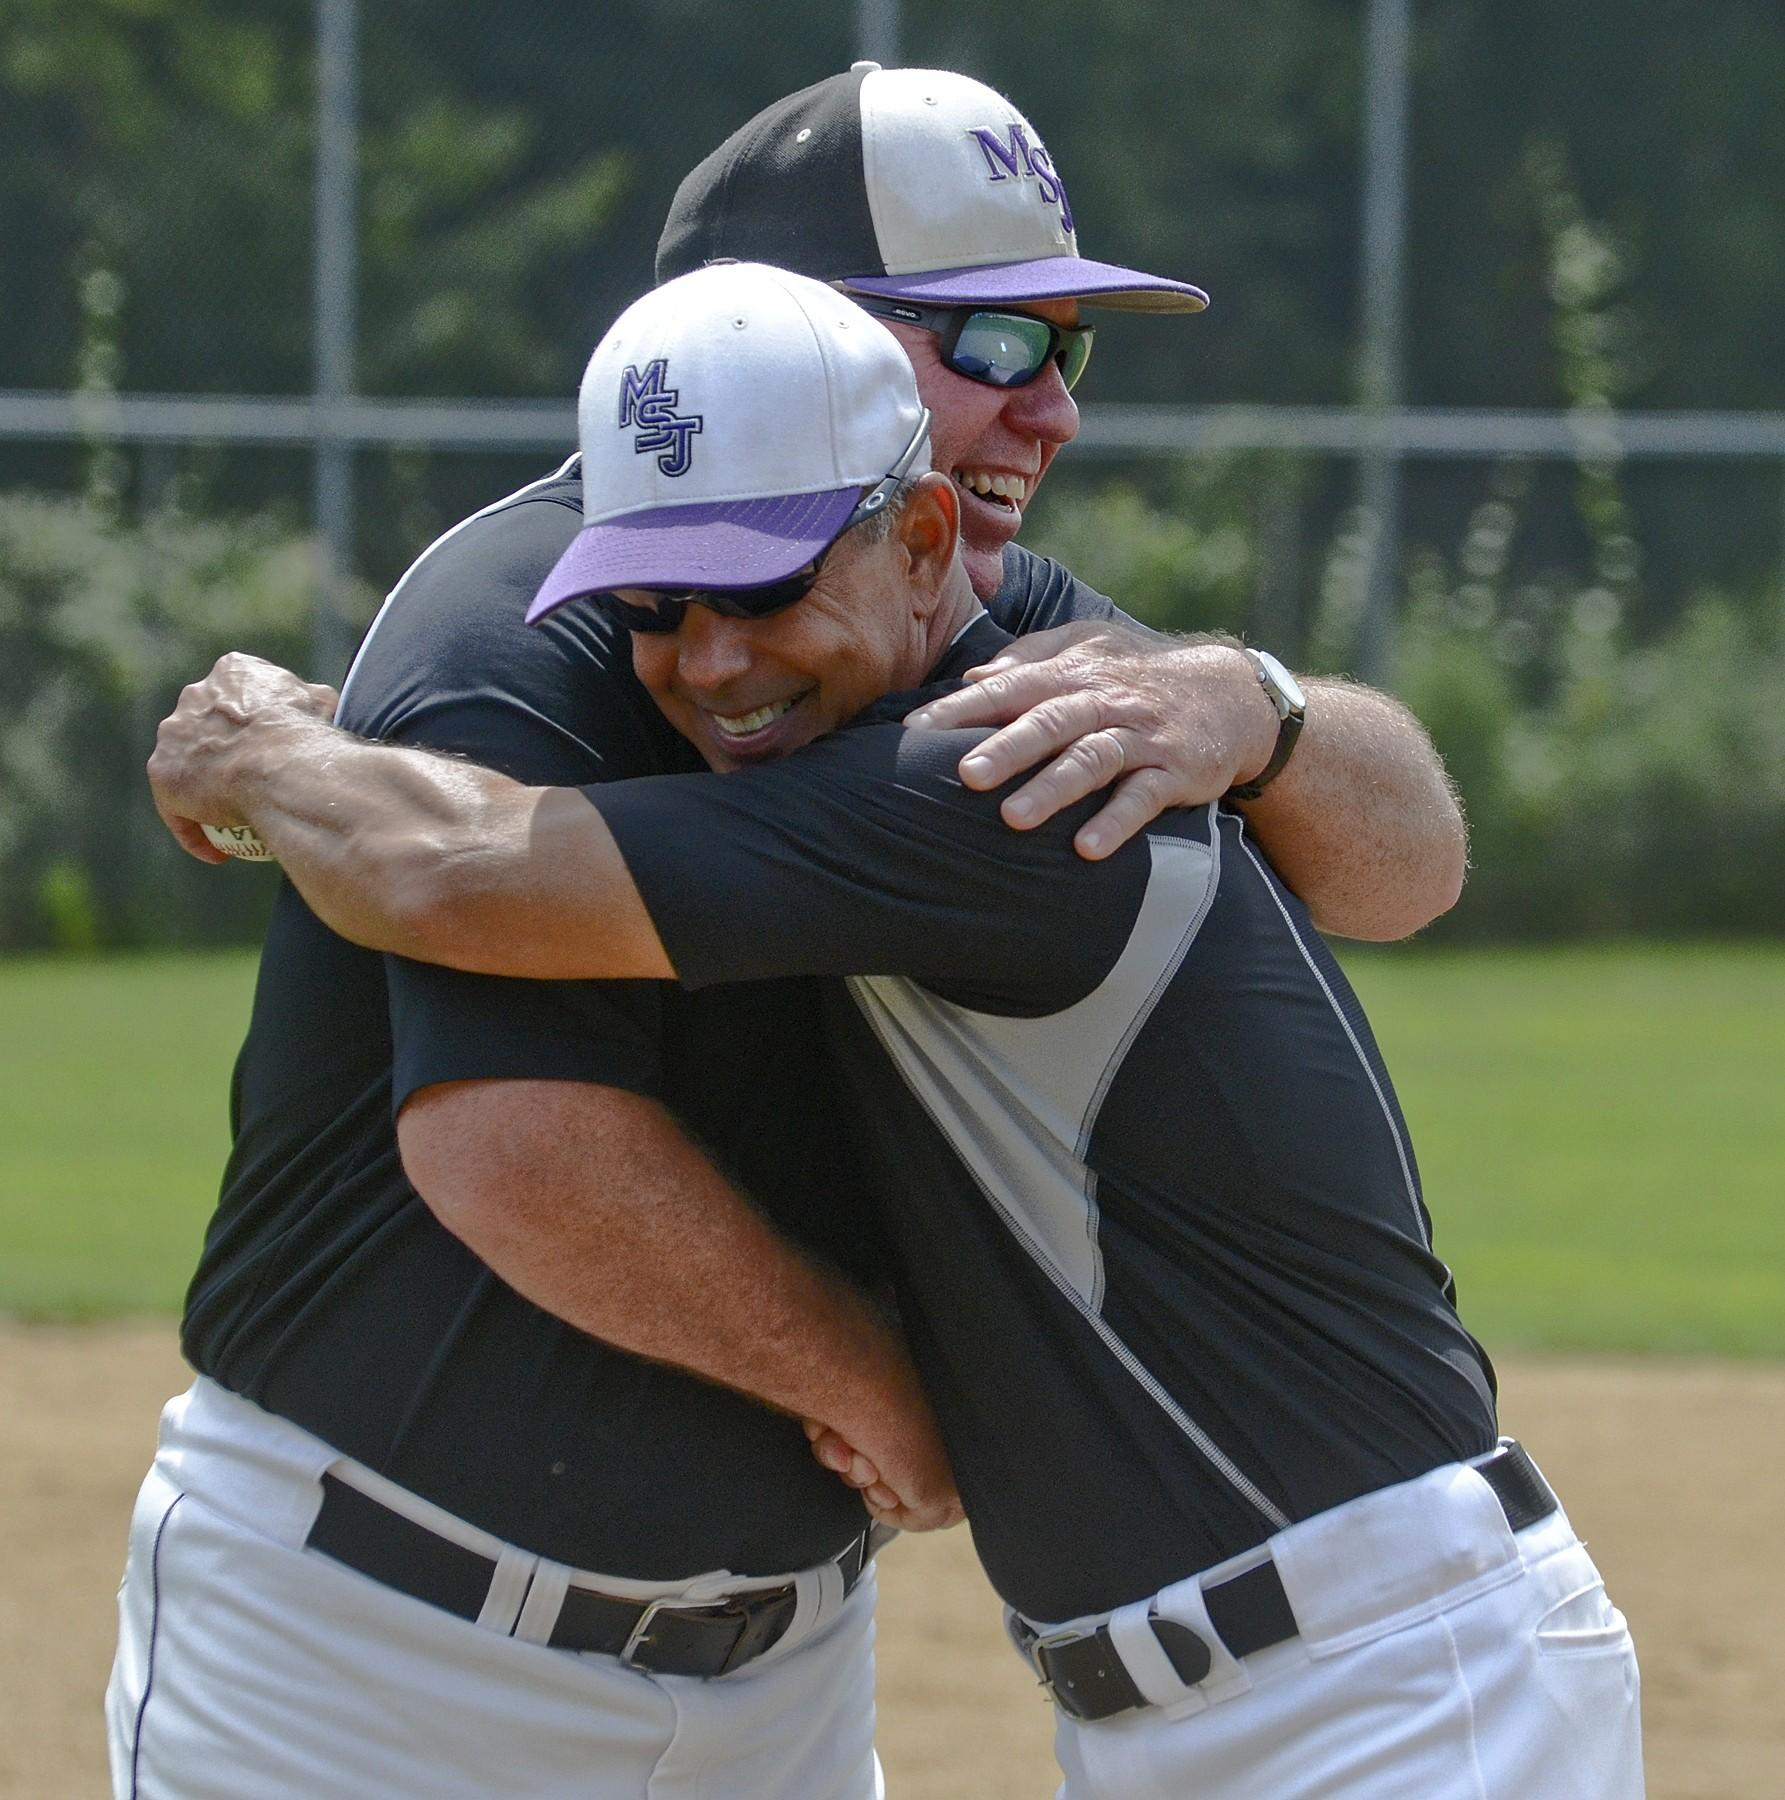 Jody Harris (front), new coach of the Mount St. Joseph baseball team, hugs Dave Norton, outgoing baseball coach at Mount St. Joseph.